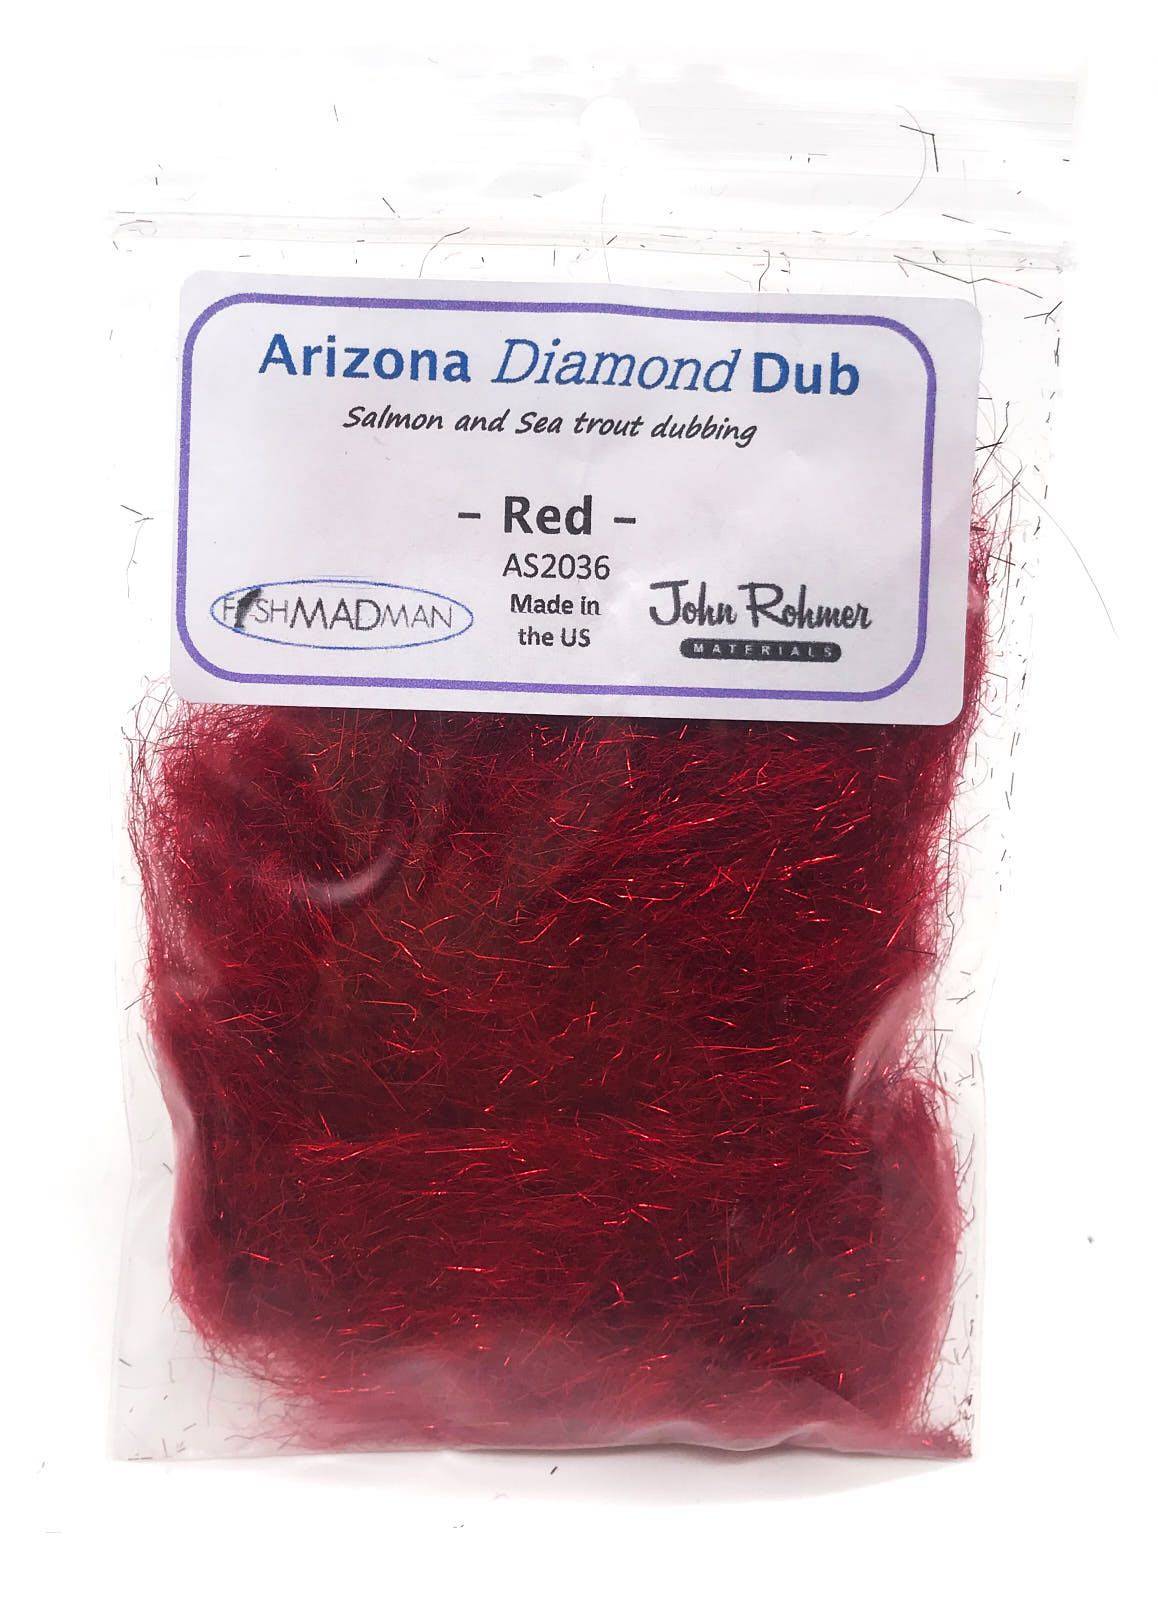 Arizona Diamond Dub Red